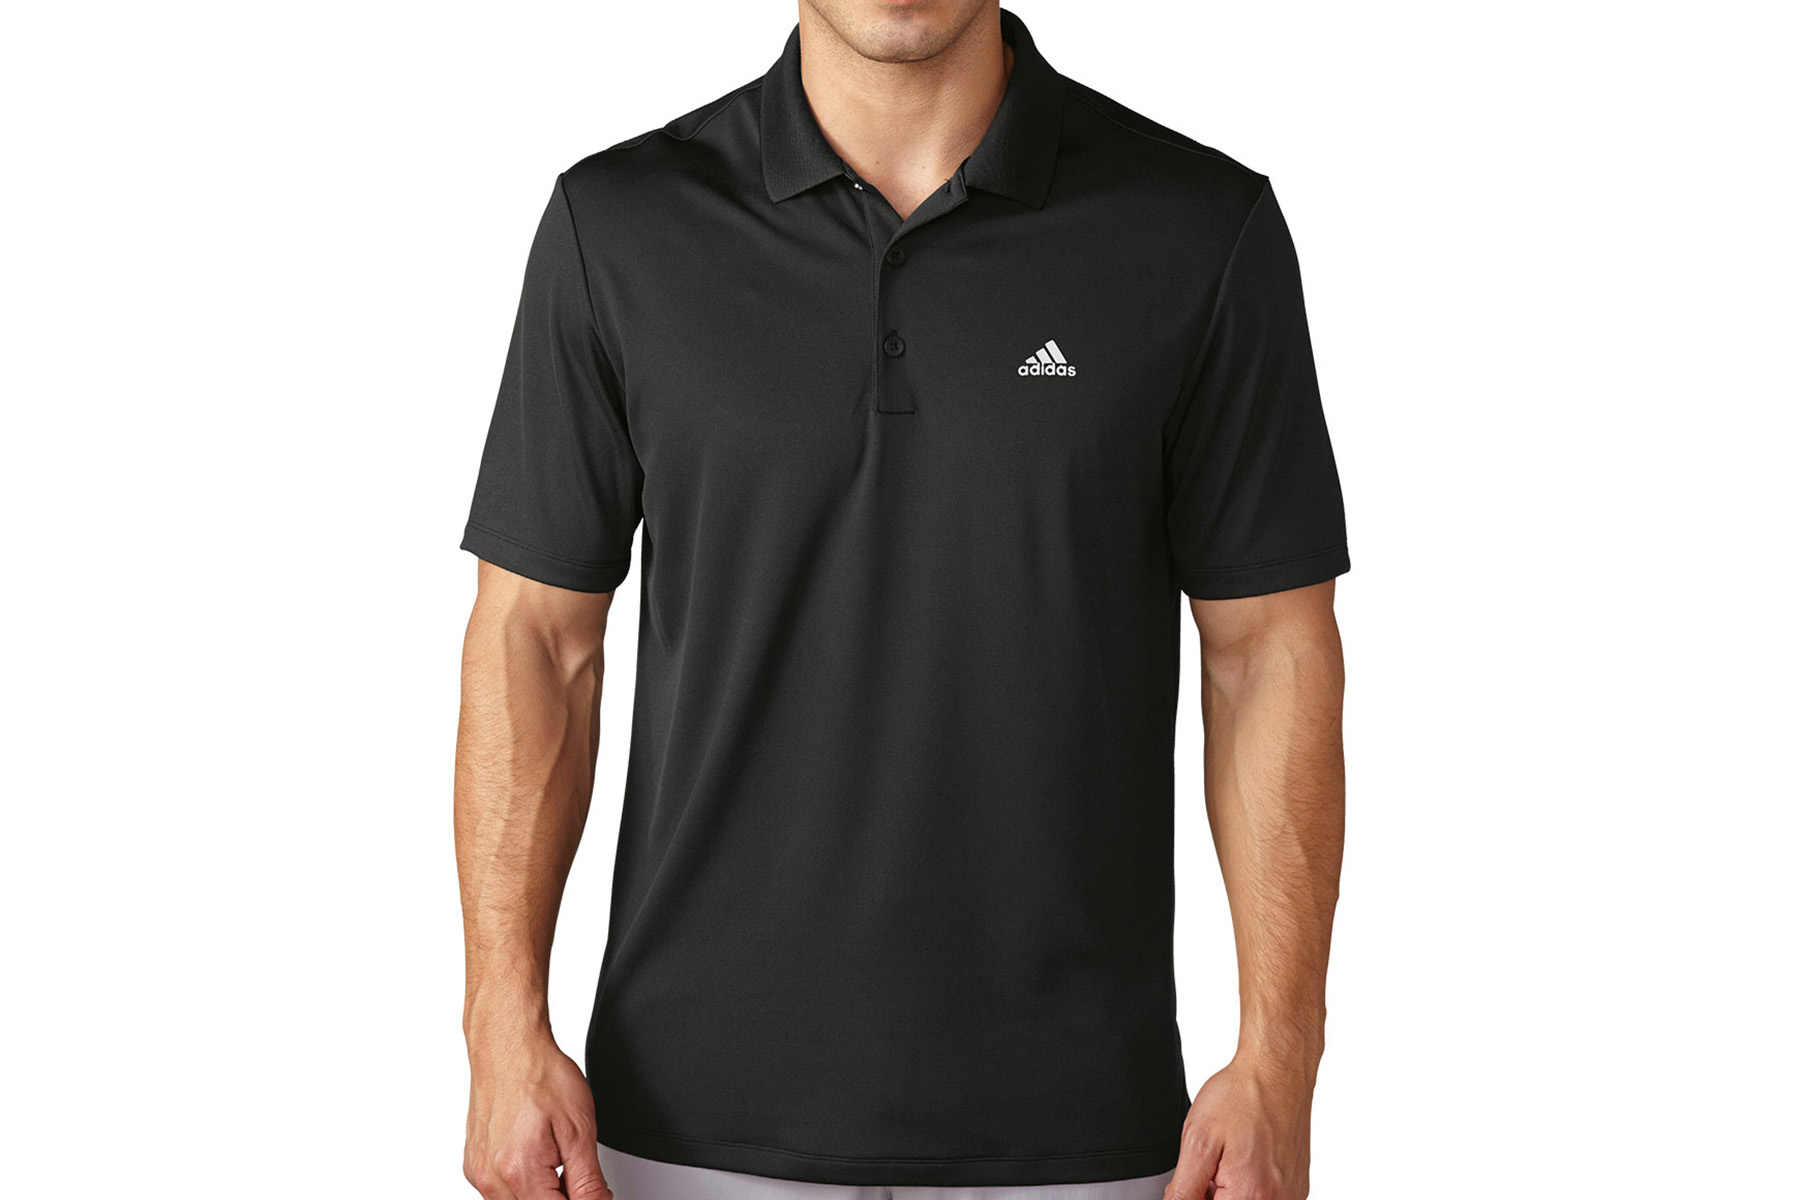 adidas golf performance polo shirt online golf. Black Bedroom Furniture Sets. Home Design Ideas